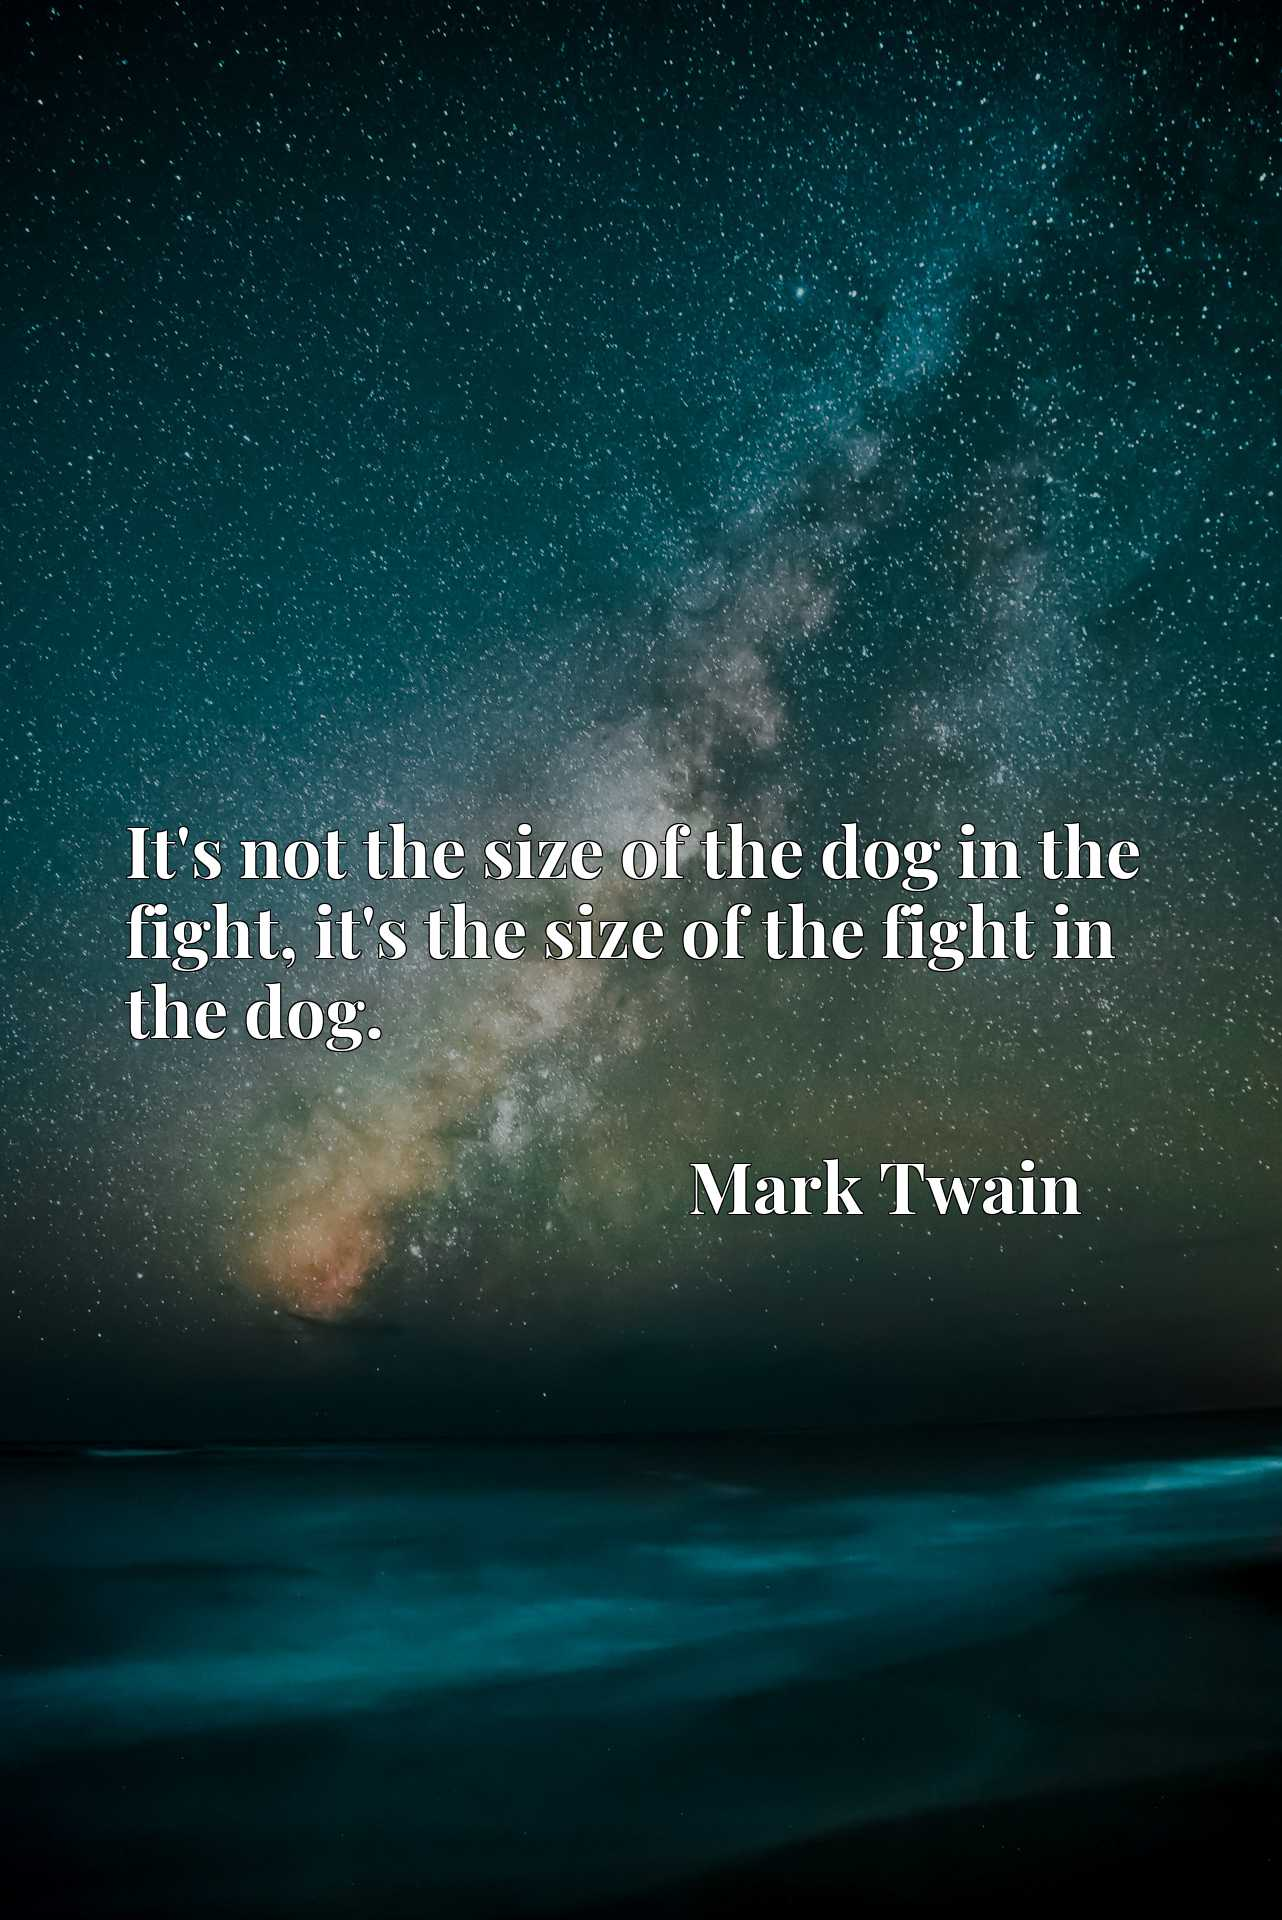 Quote Picture :It's not the size of the dog in the fight, it's the size of the fight in the dog.